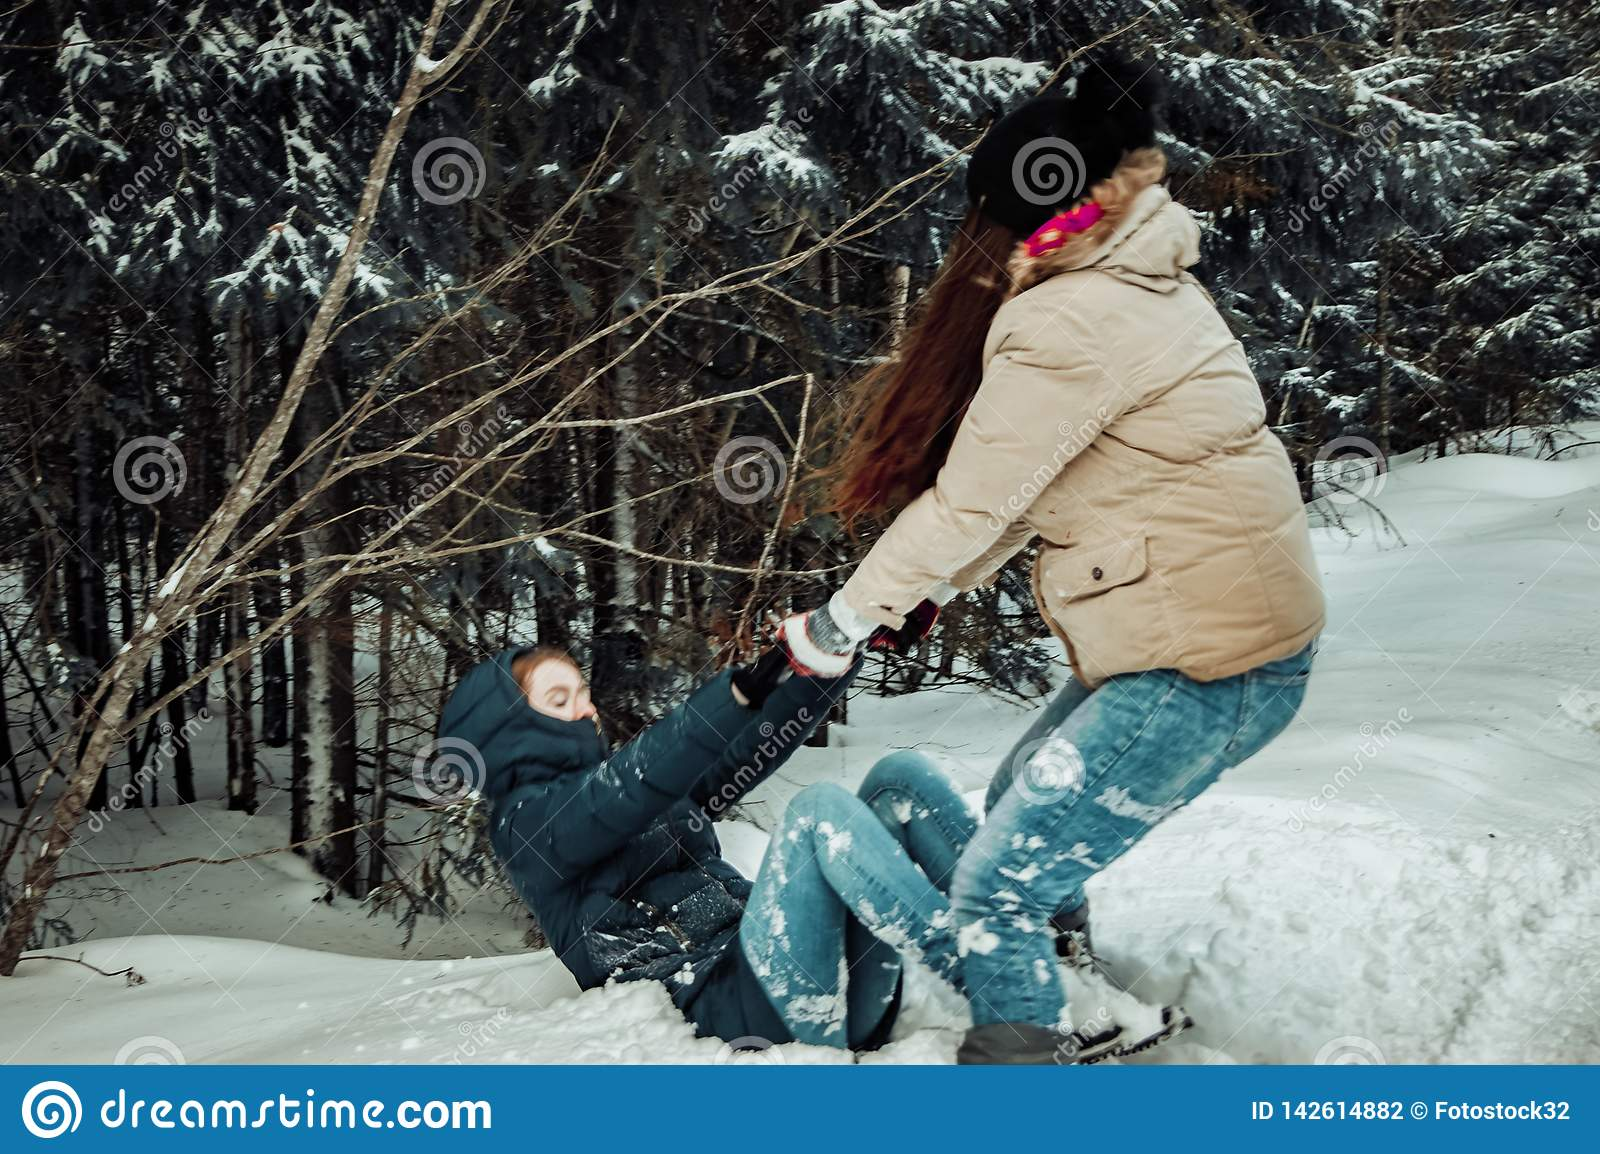 The girl lifts her friend out of the snow